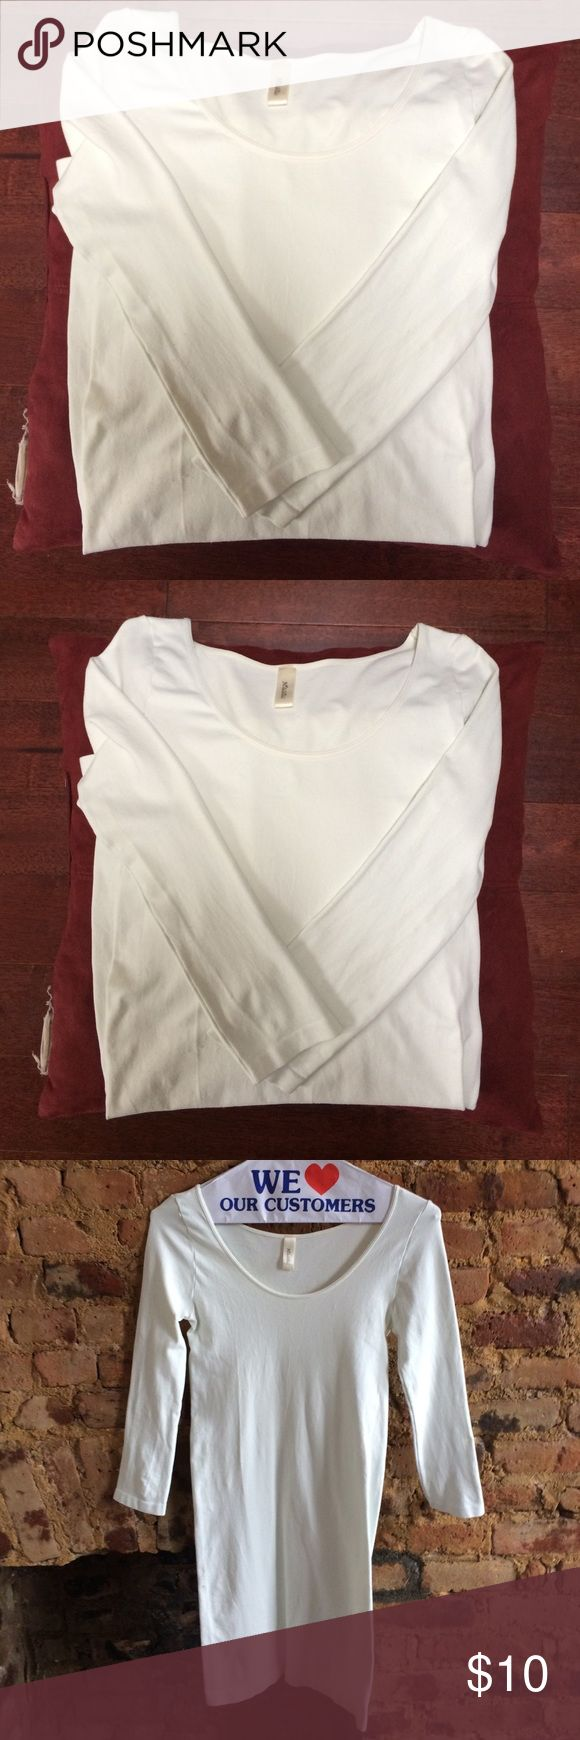 Classic white and tight shirt dress White shirt dress. One size but on the tighter side. 92% Nylon and 8% Spandex. Made in USA. Handwash cold. White is an off-white. NikiBiki Dresses Long Sleeve